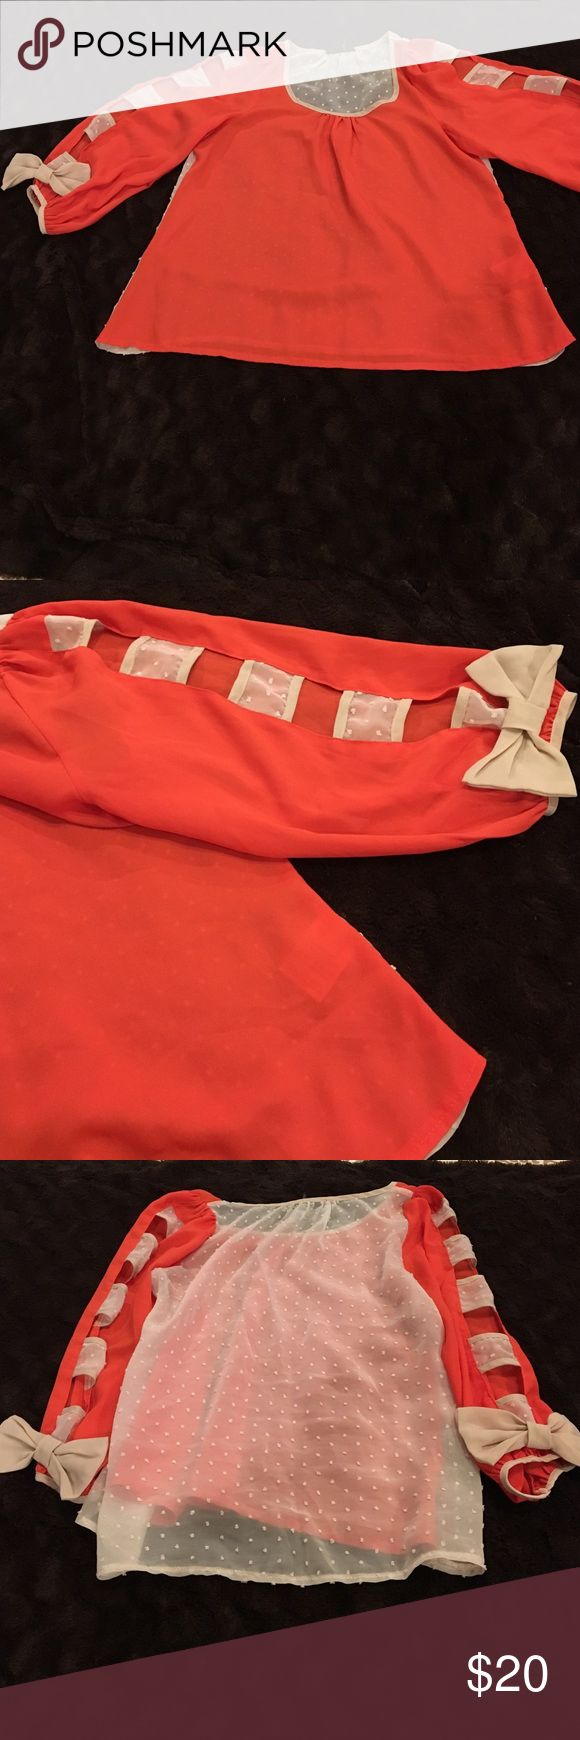 Boutique top Boutique top with detailing. Must wear a cami underneath. Open sleeves with bows at end. 3/4 length sleeves. Front is burnt orange and back is cream/tan. Very cute with denim skinnies! Size Medium. Smoke-free, pet-free home. Tops Blouses